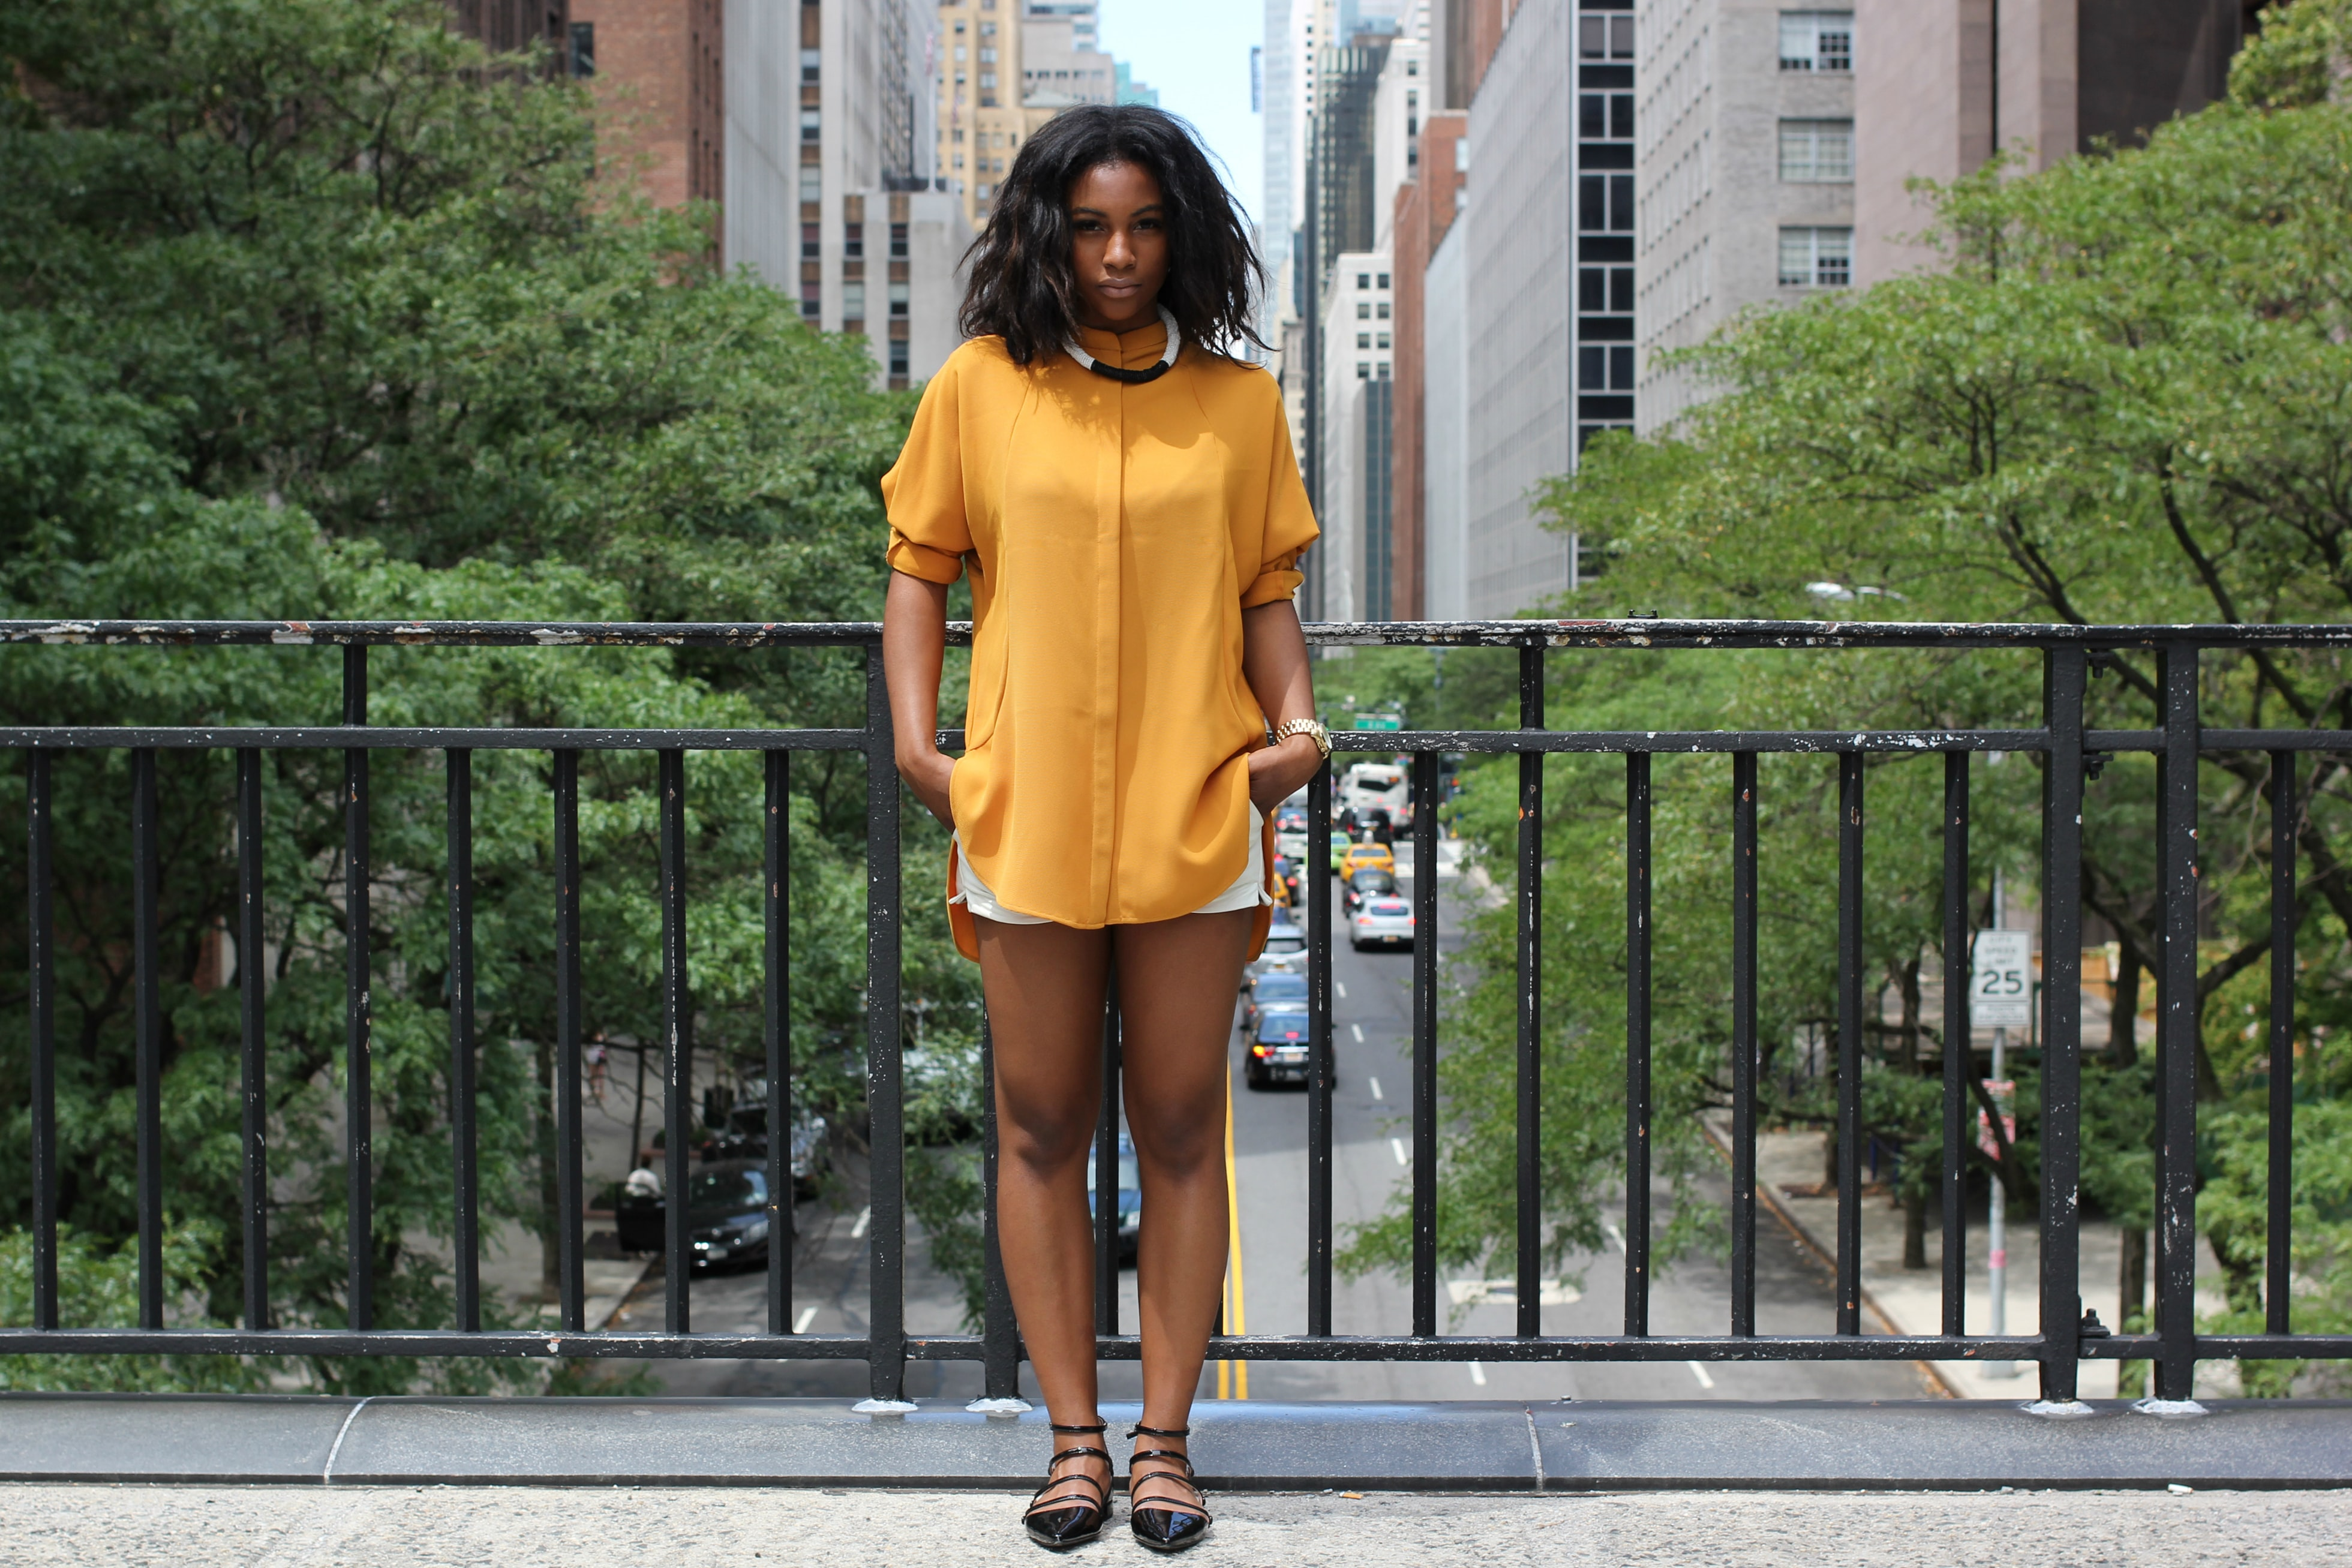 Woman models a yellow shirt and shorts on a bridge in New York